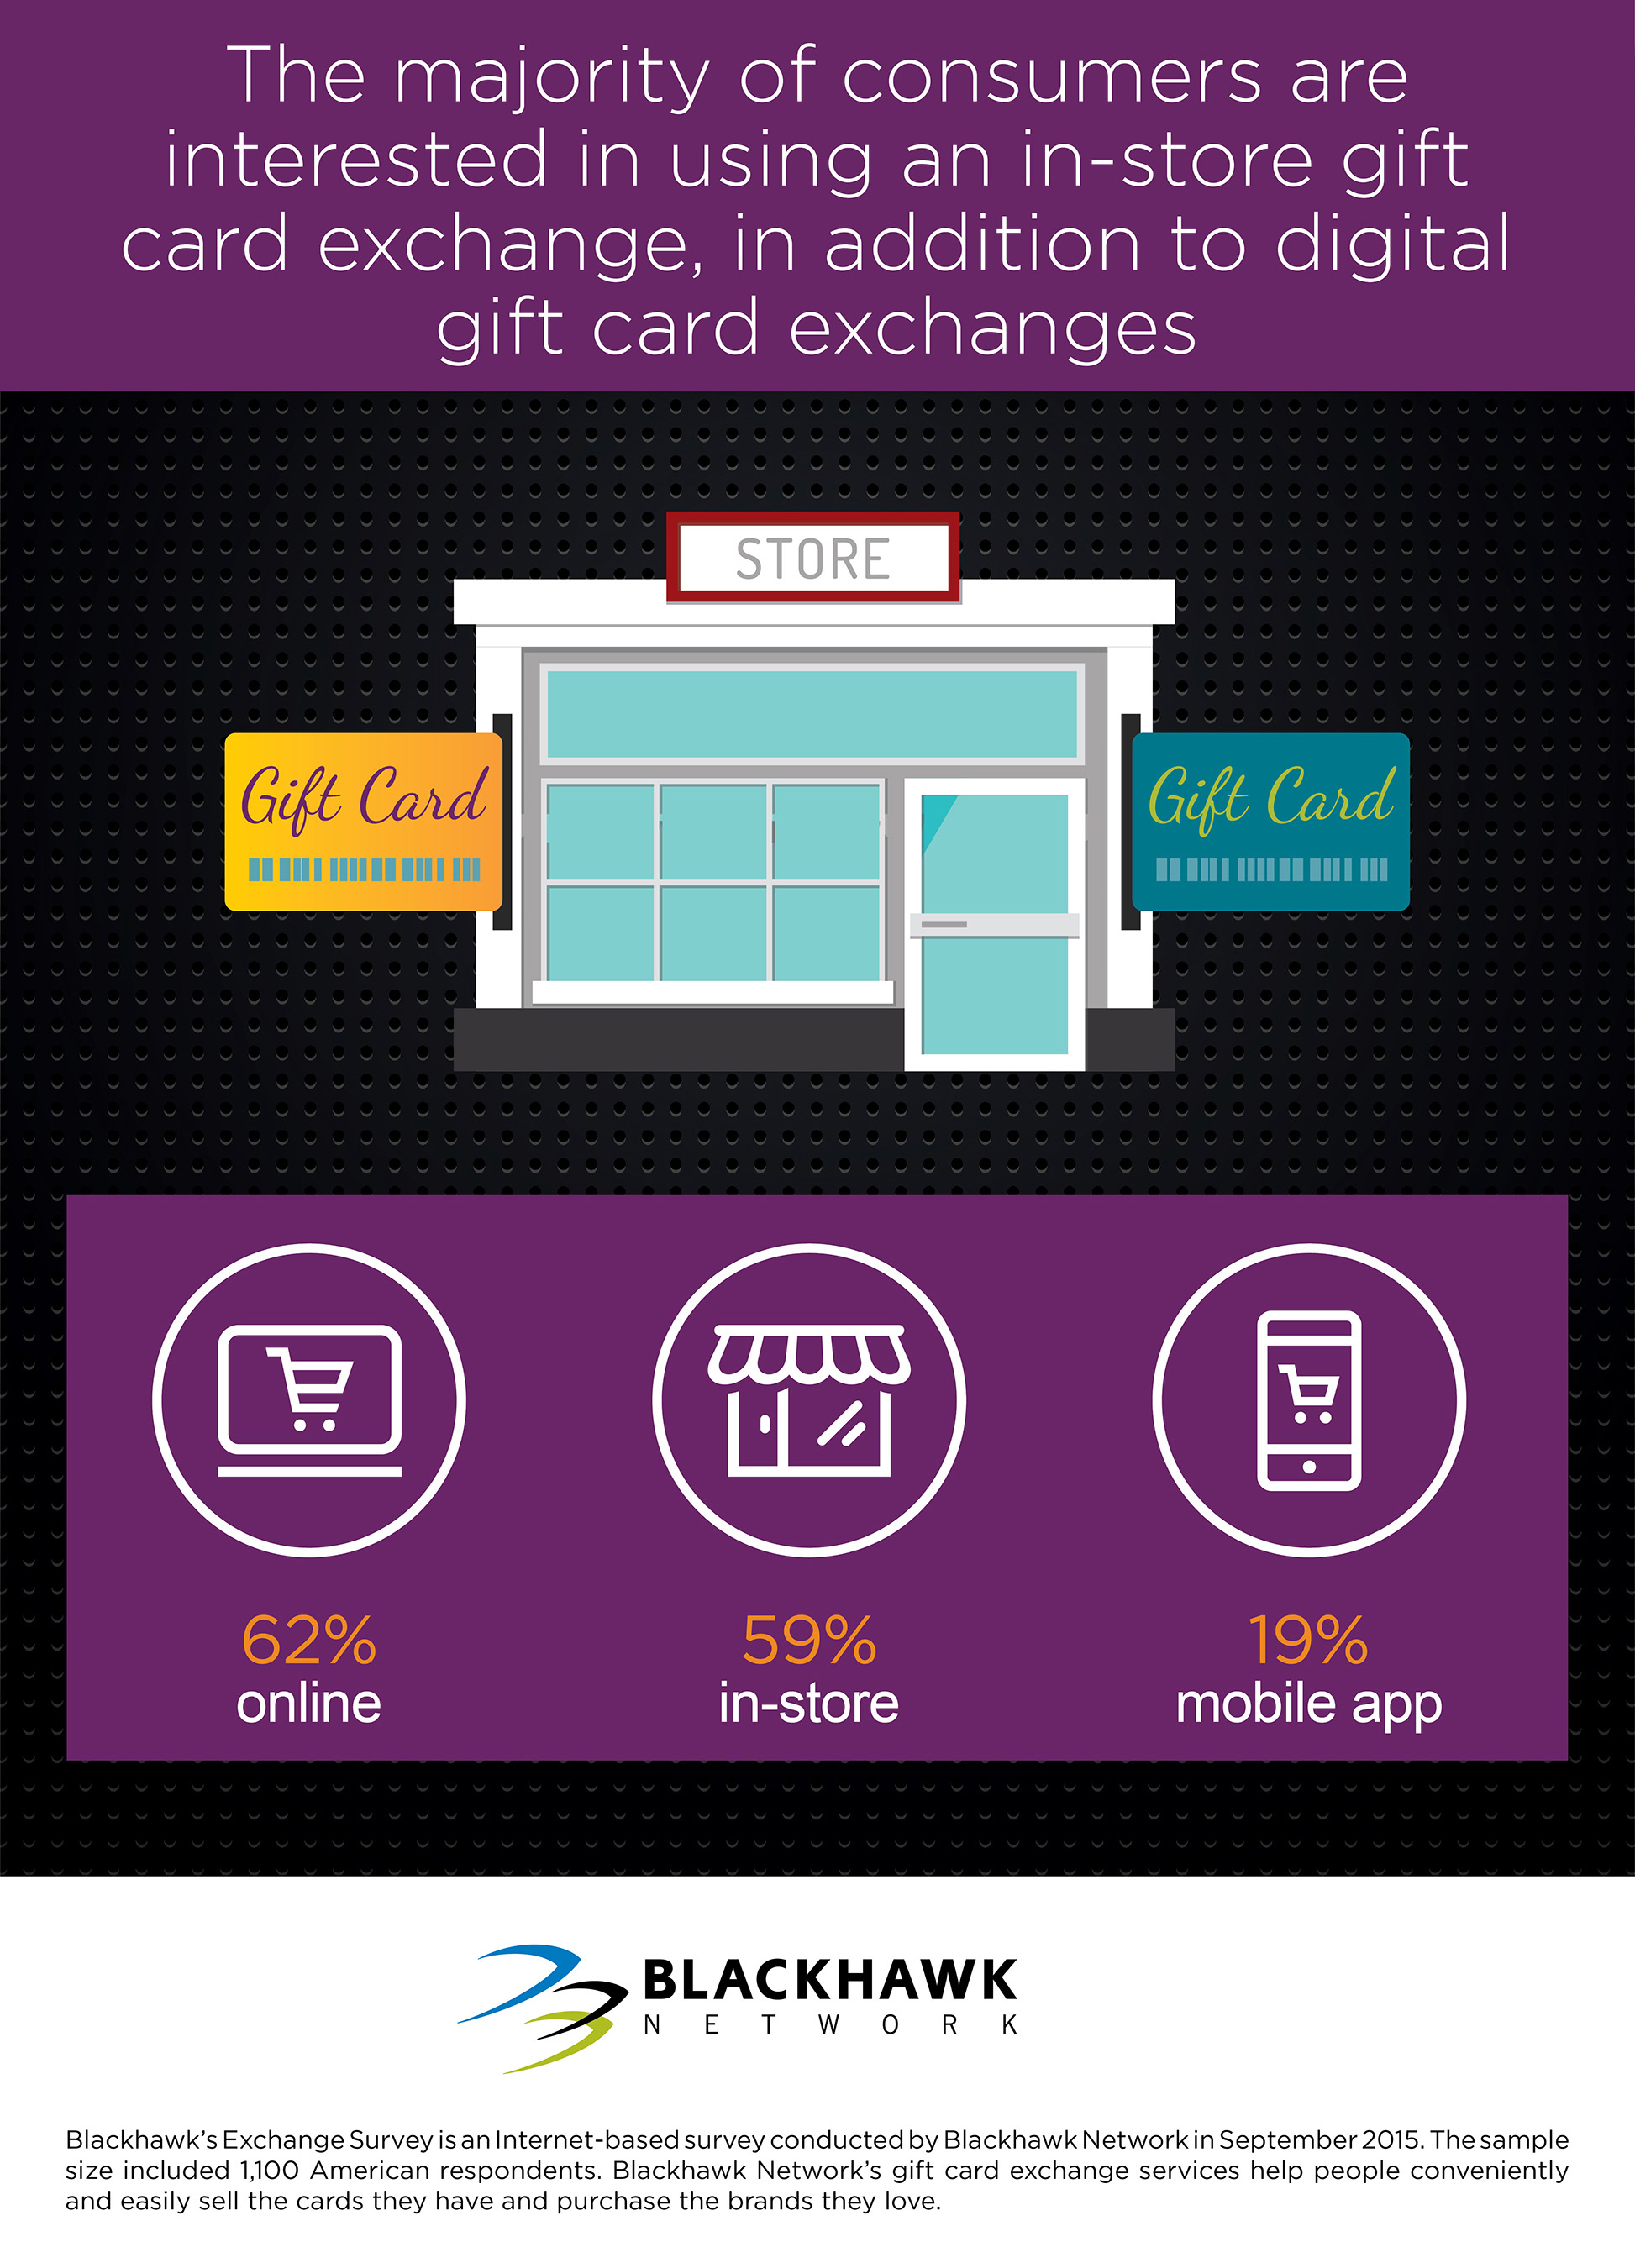 The majority of consumers are interested in using an in-store gift card exchange, in addition to digital gift card exchanges